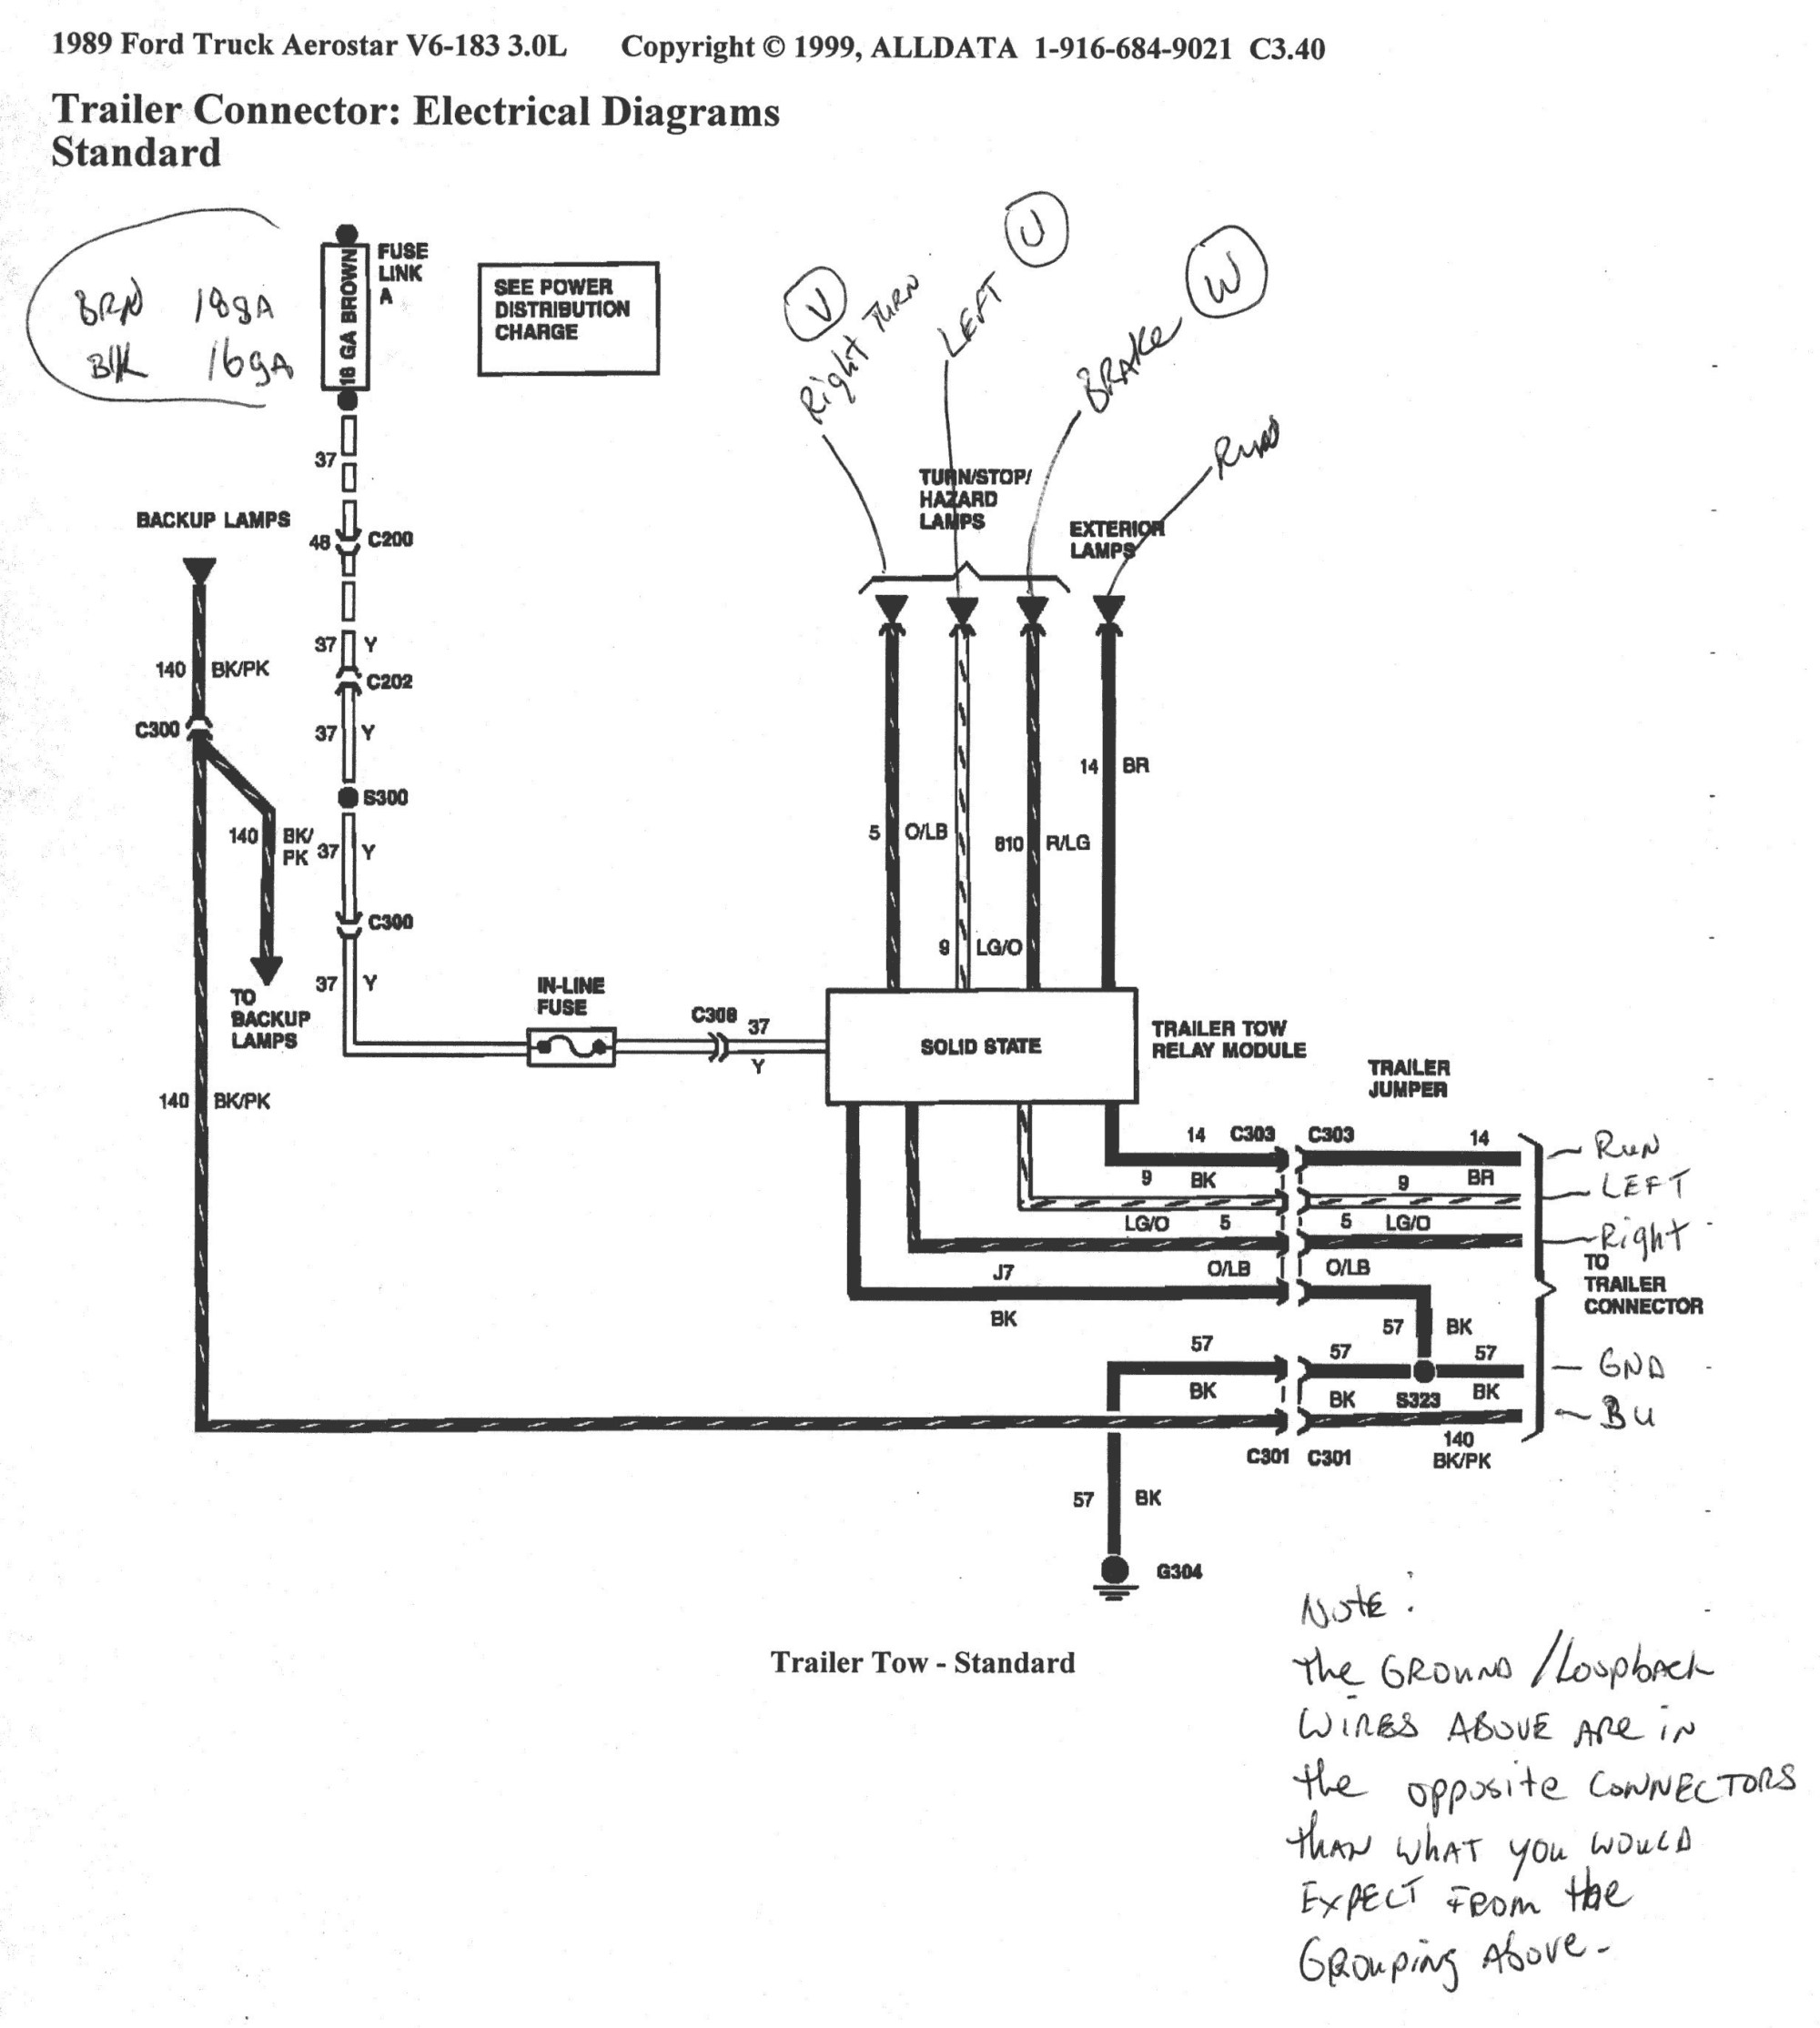 hight resolution of wiring diagram 93 ford aerostar wiring diagram paperaerostar engine diagram wiring diagram used 1989 ford aerostar